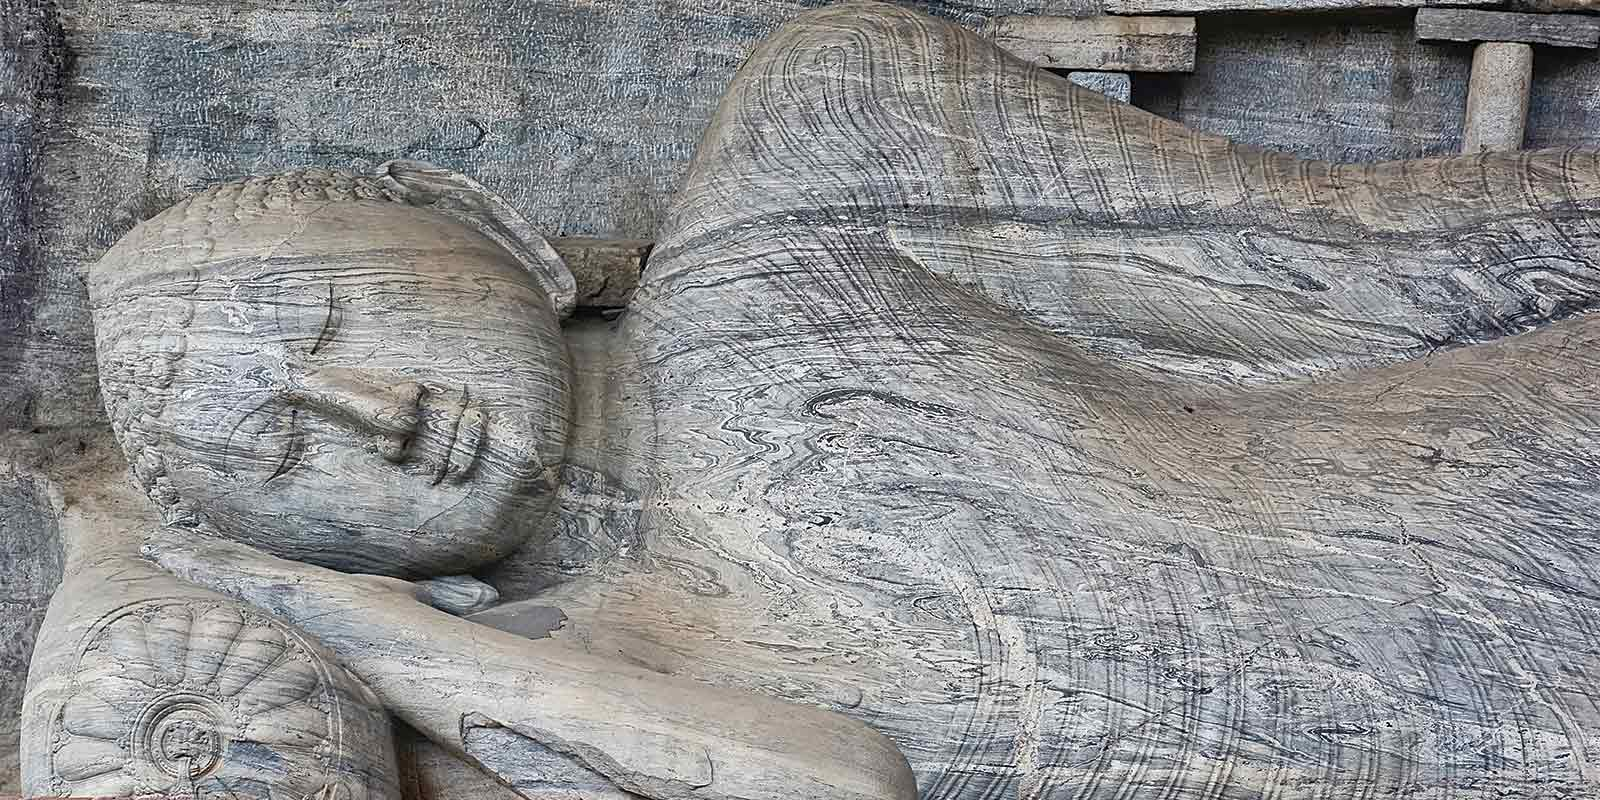 Reclining buddha at Polonnaruwa Temple